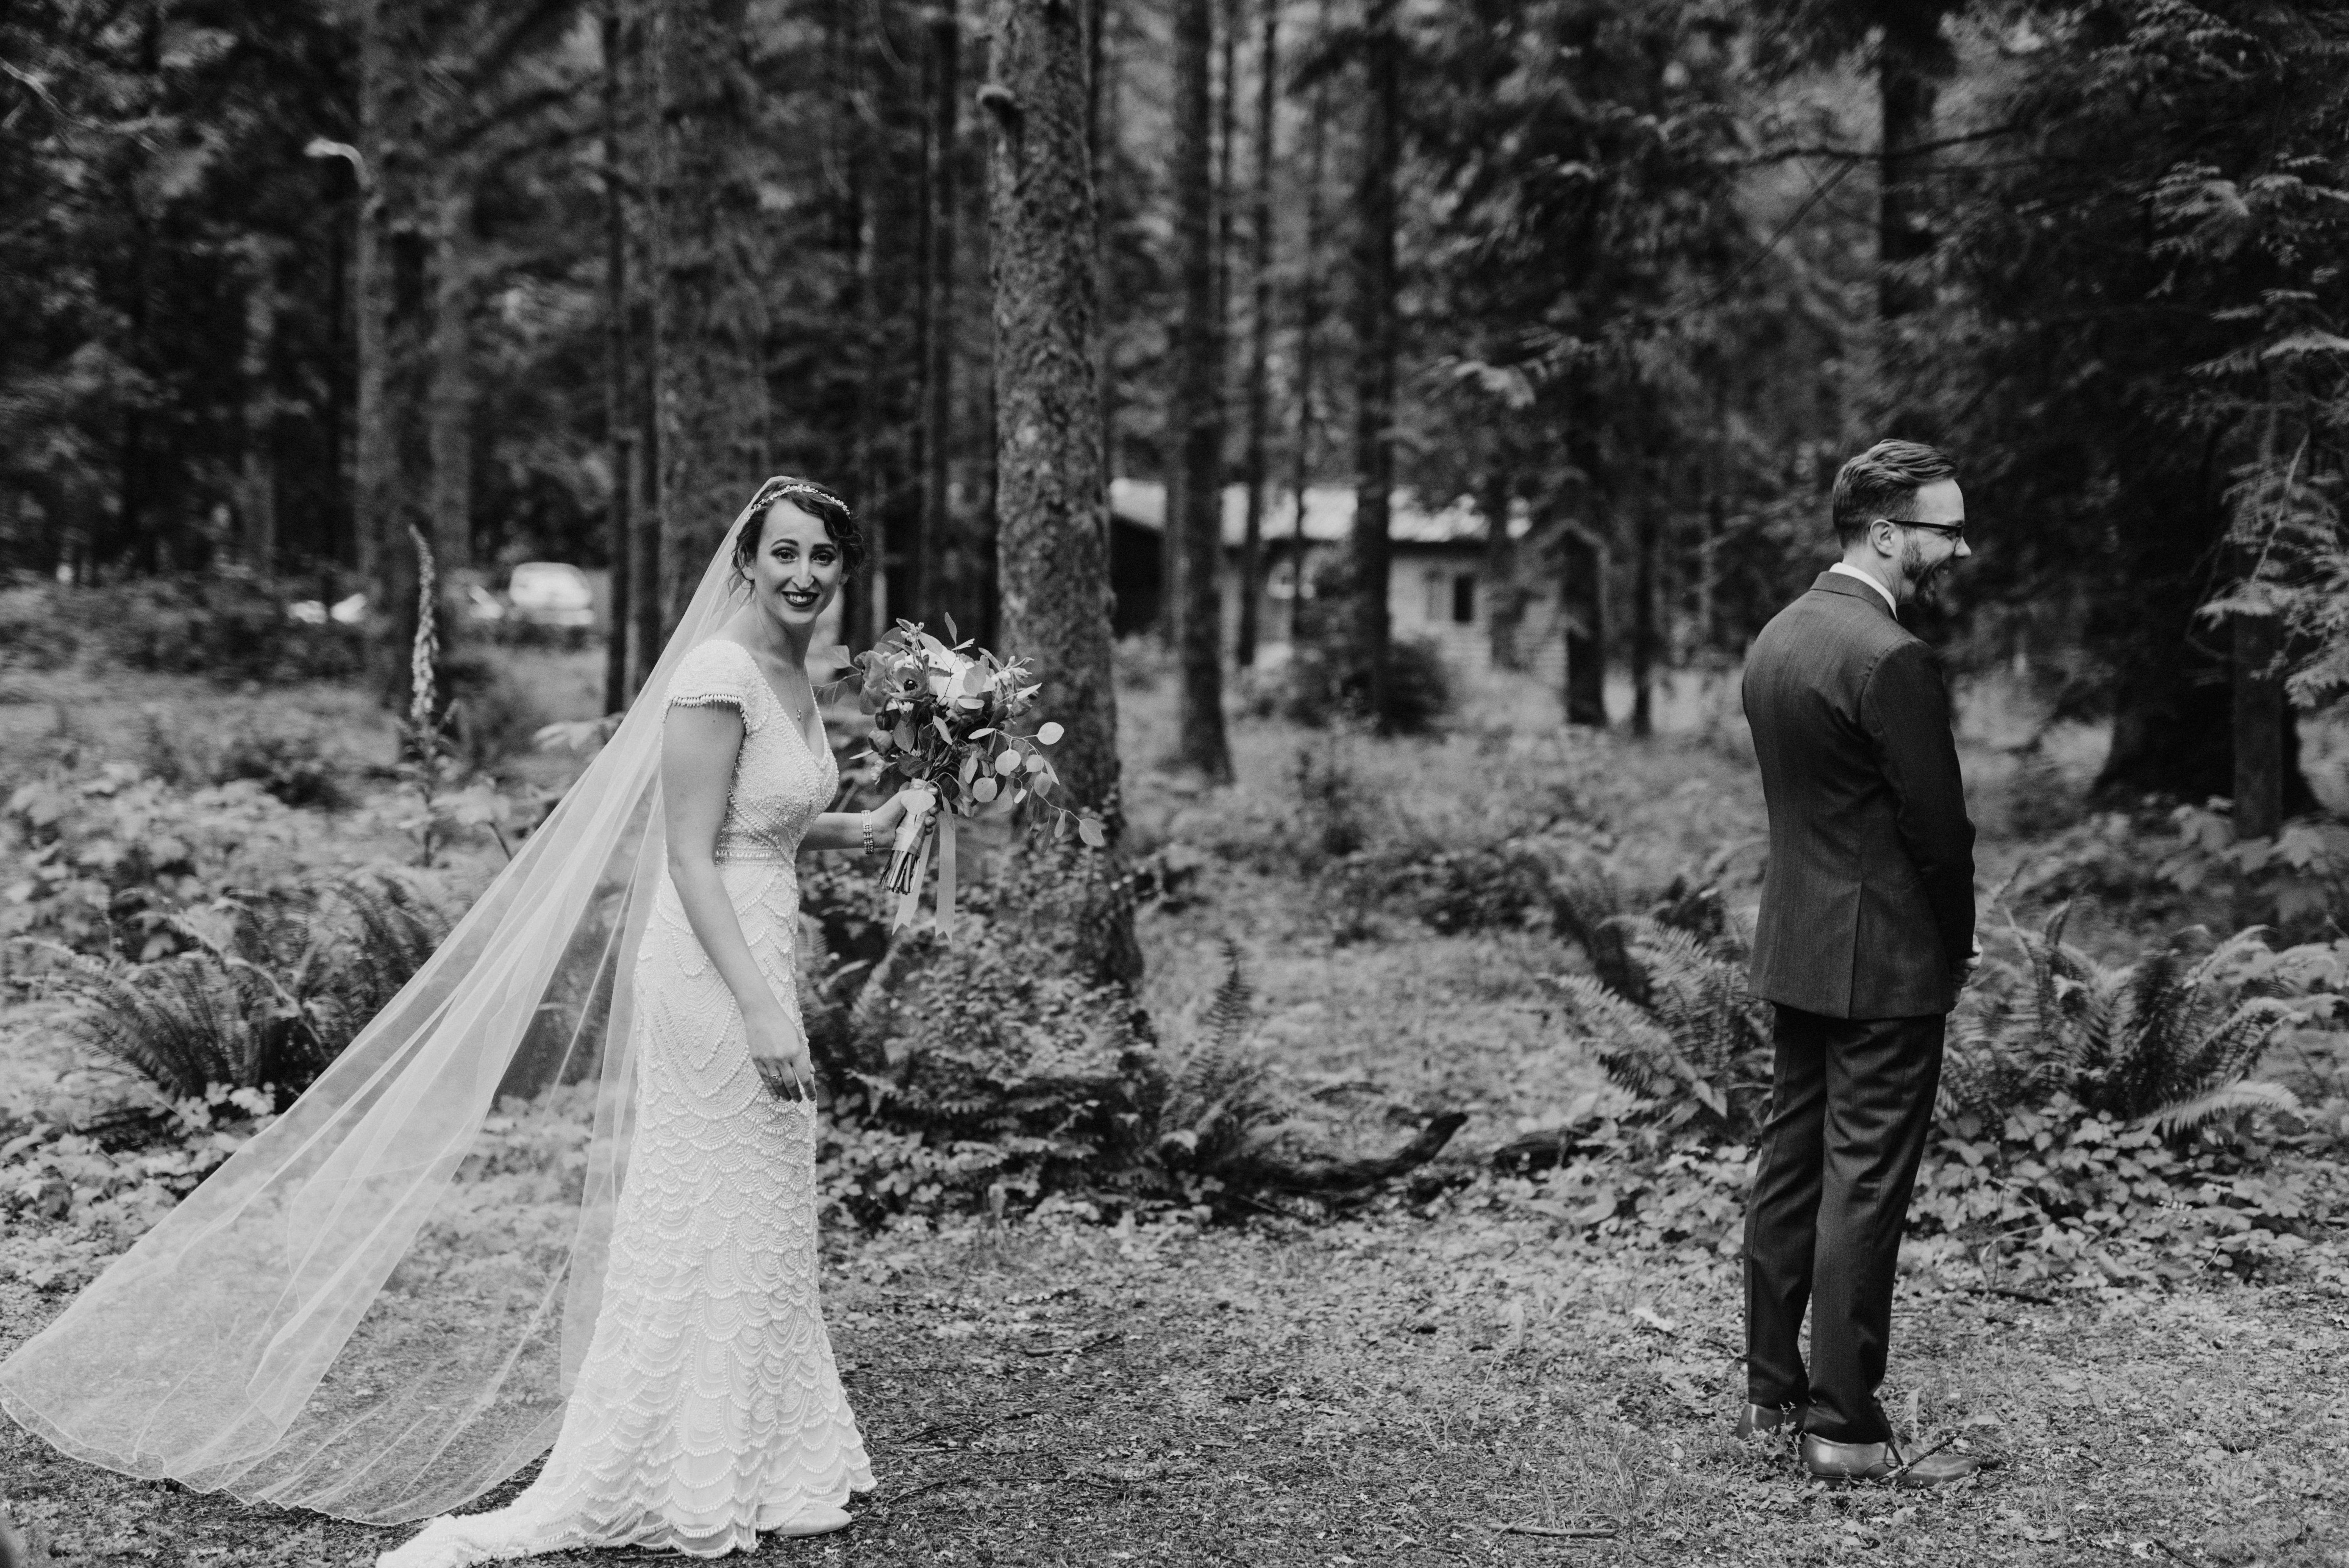 Bride and Groom's first look in the forest at Camp Angelos wedding